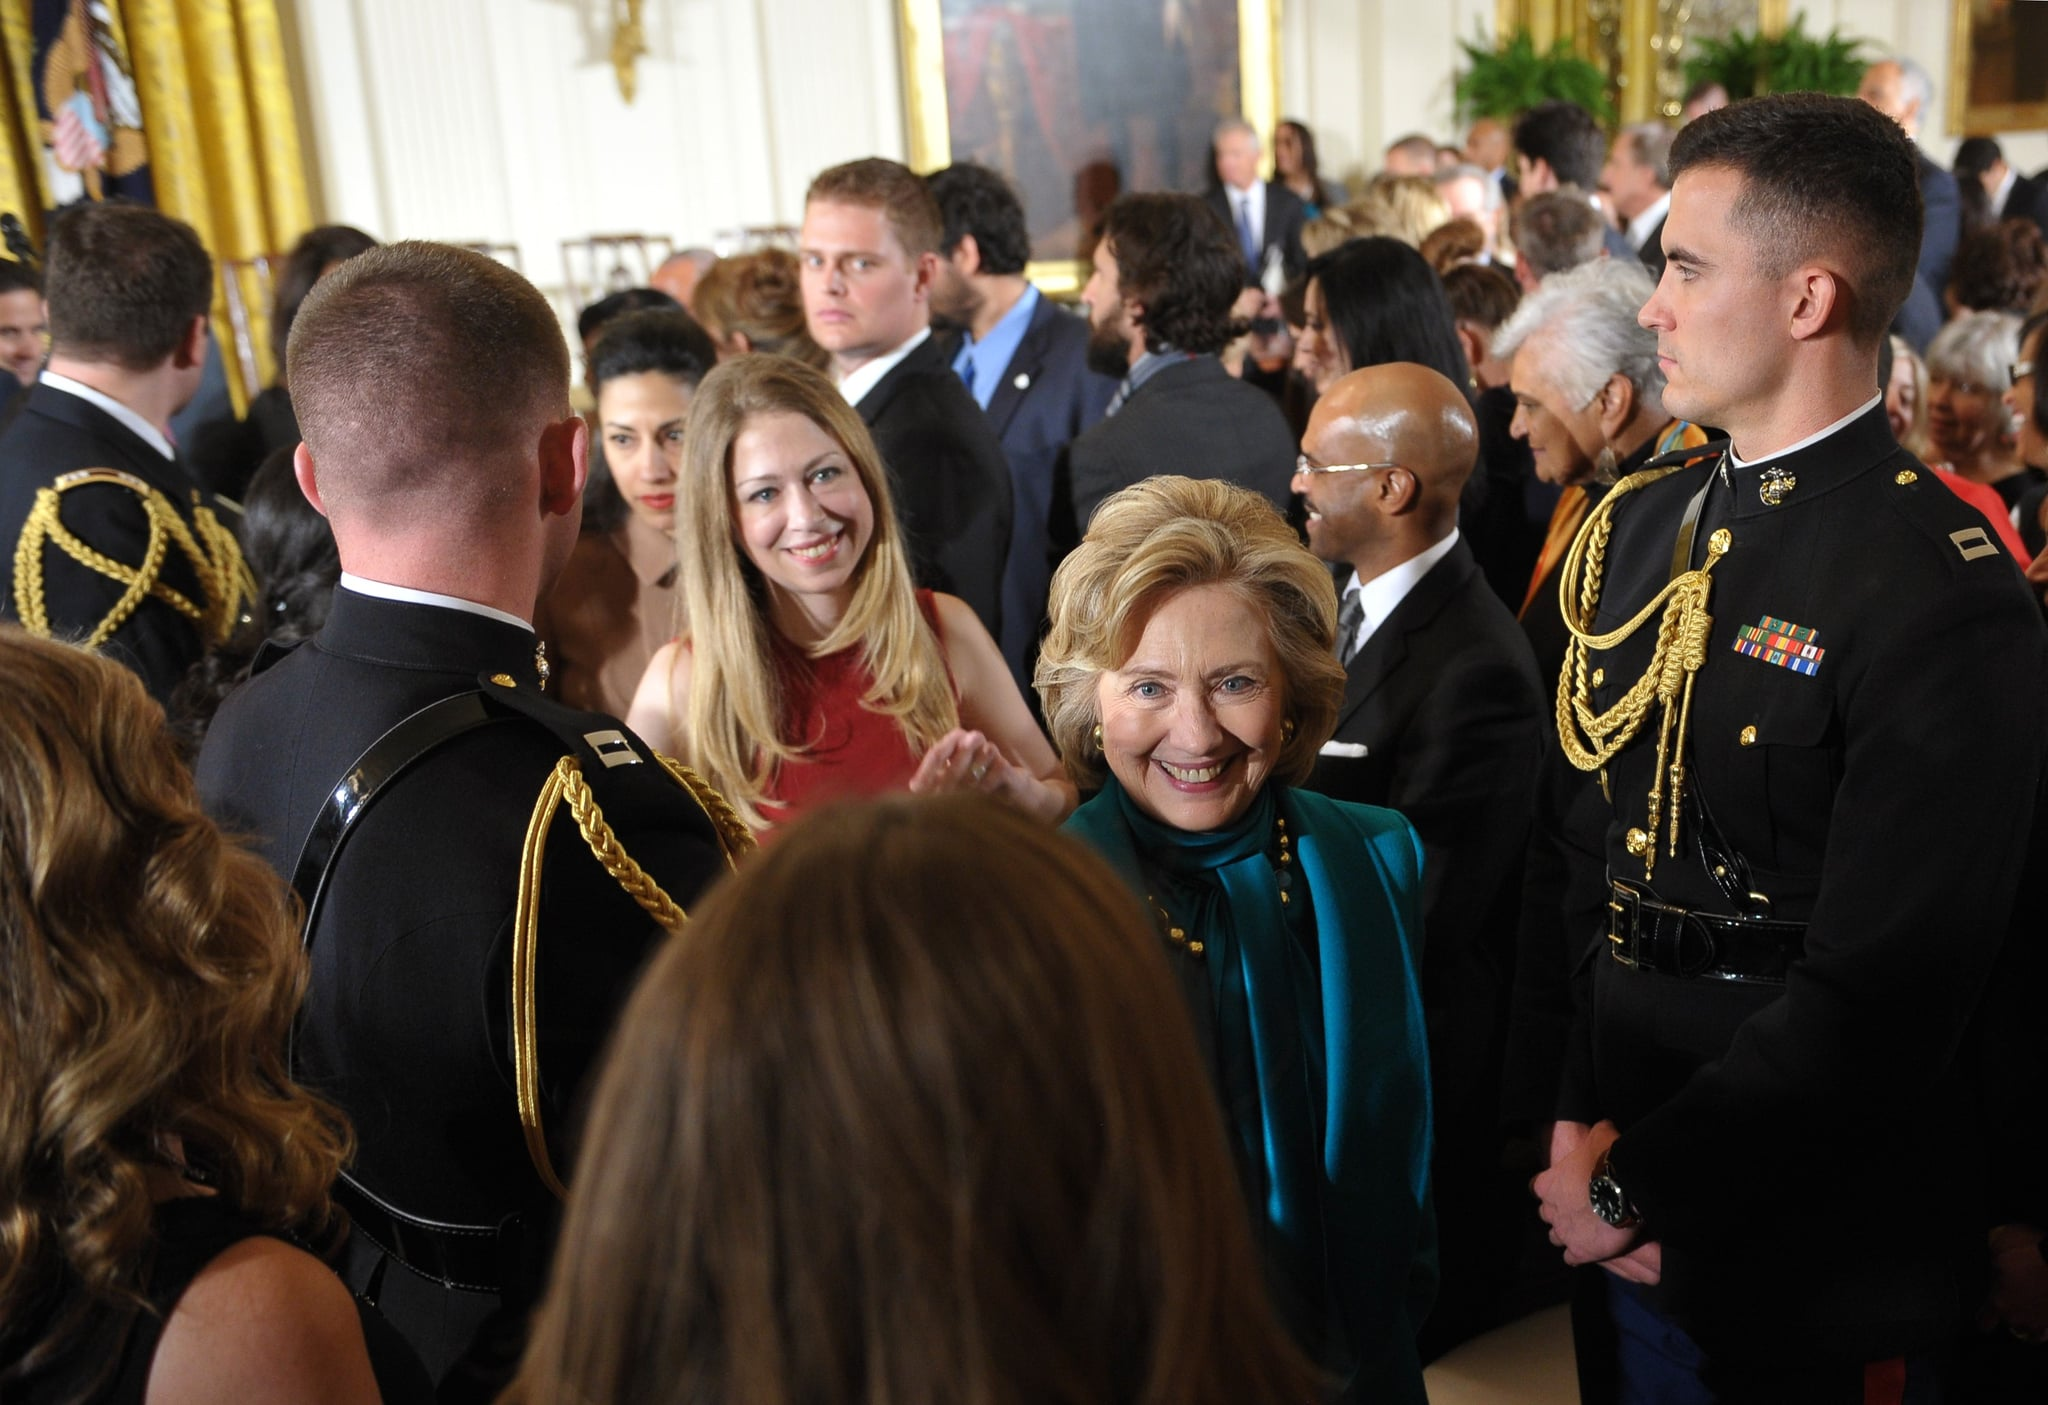 Chelsea and Hillary Clinton were on hand to celebrate Bill Clinton's big honor.